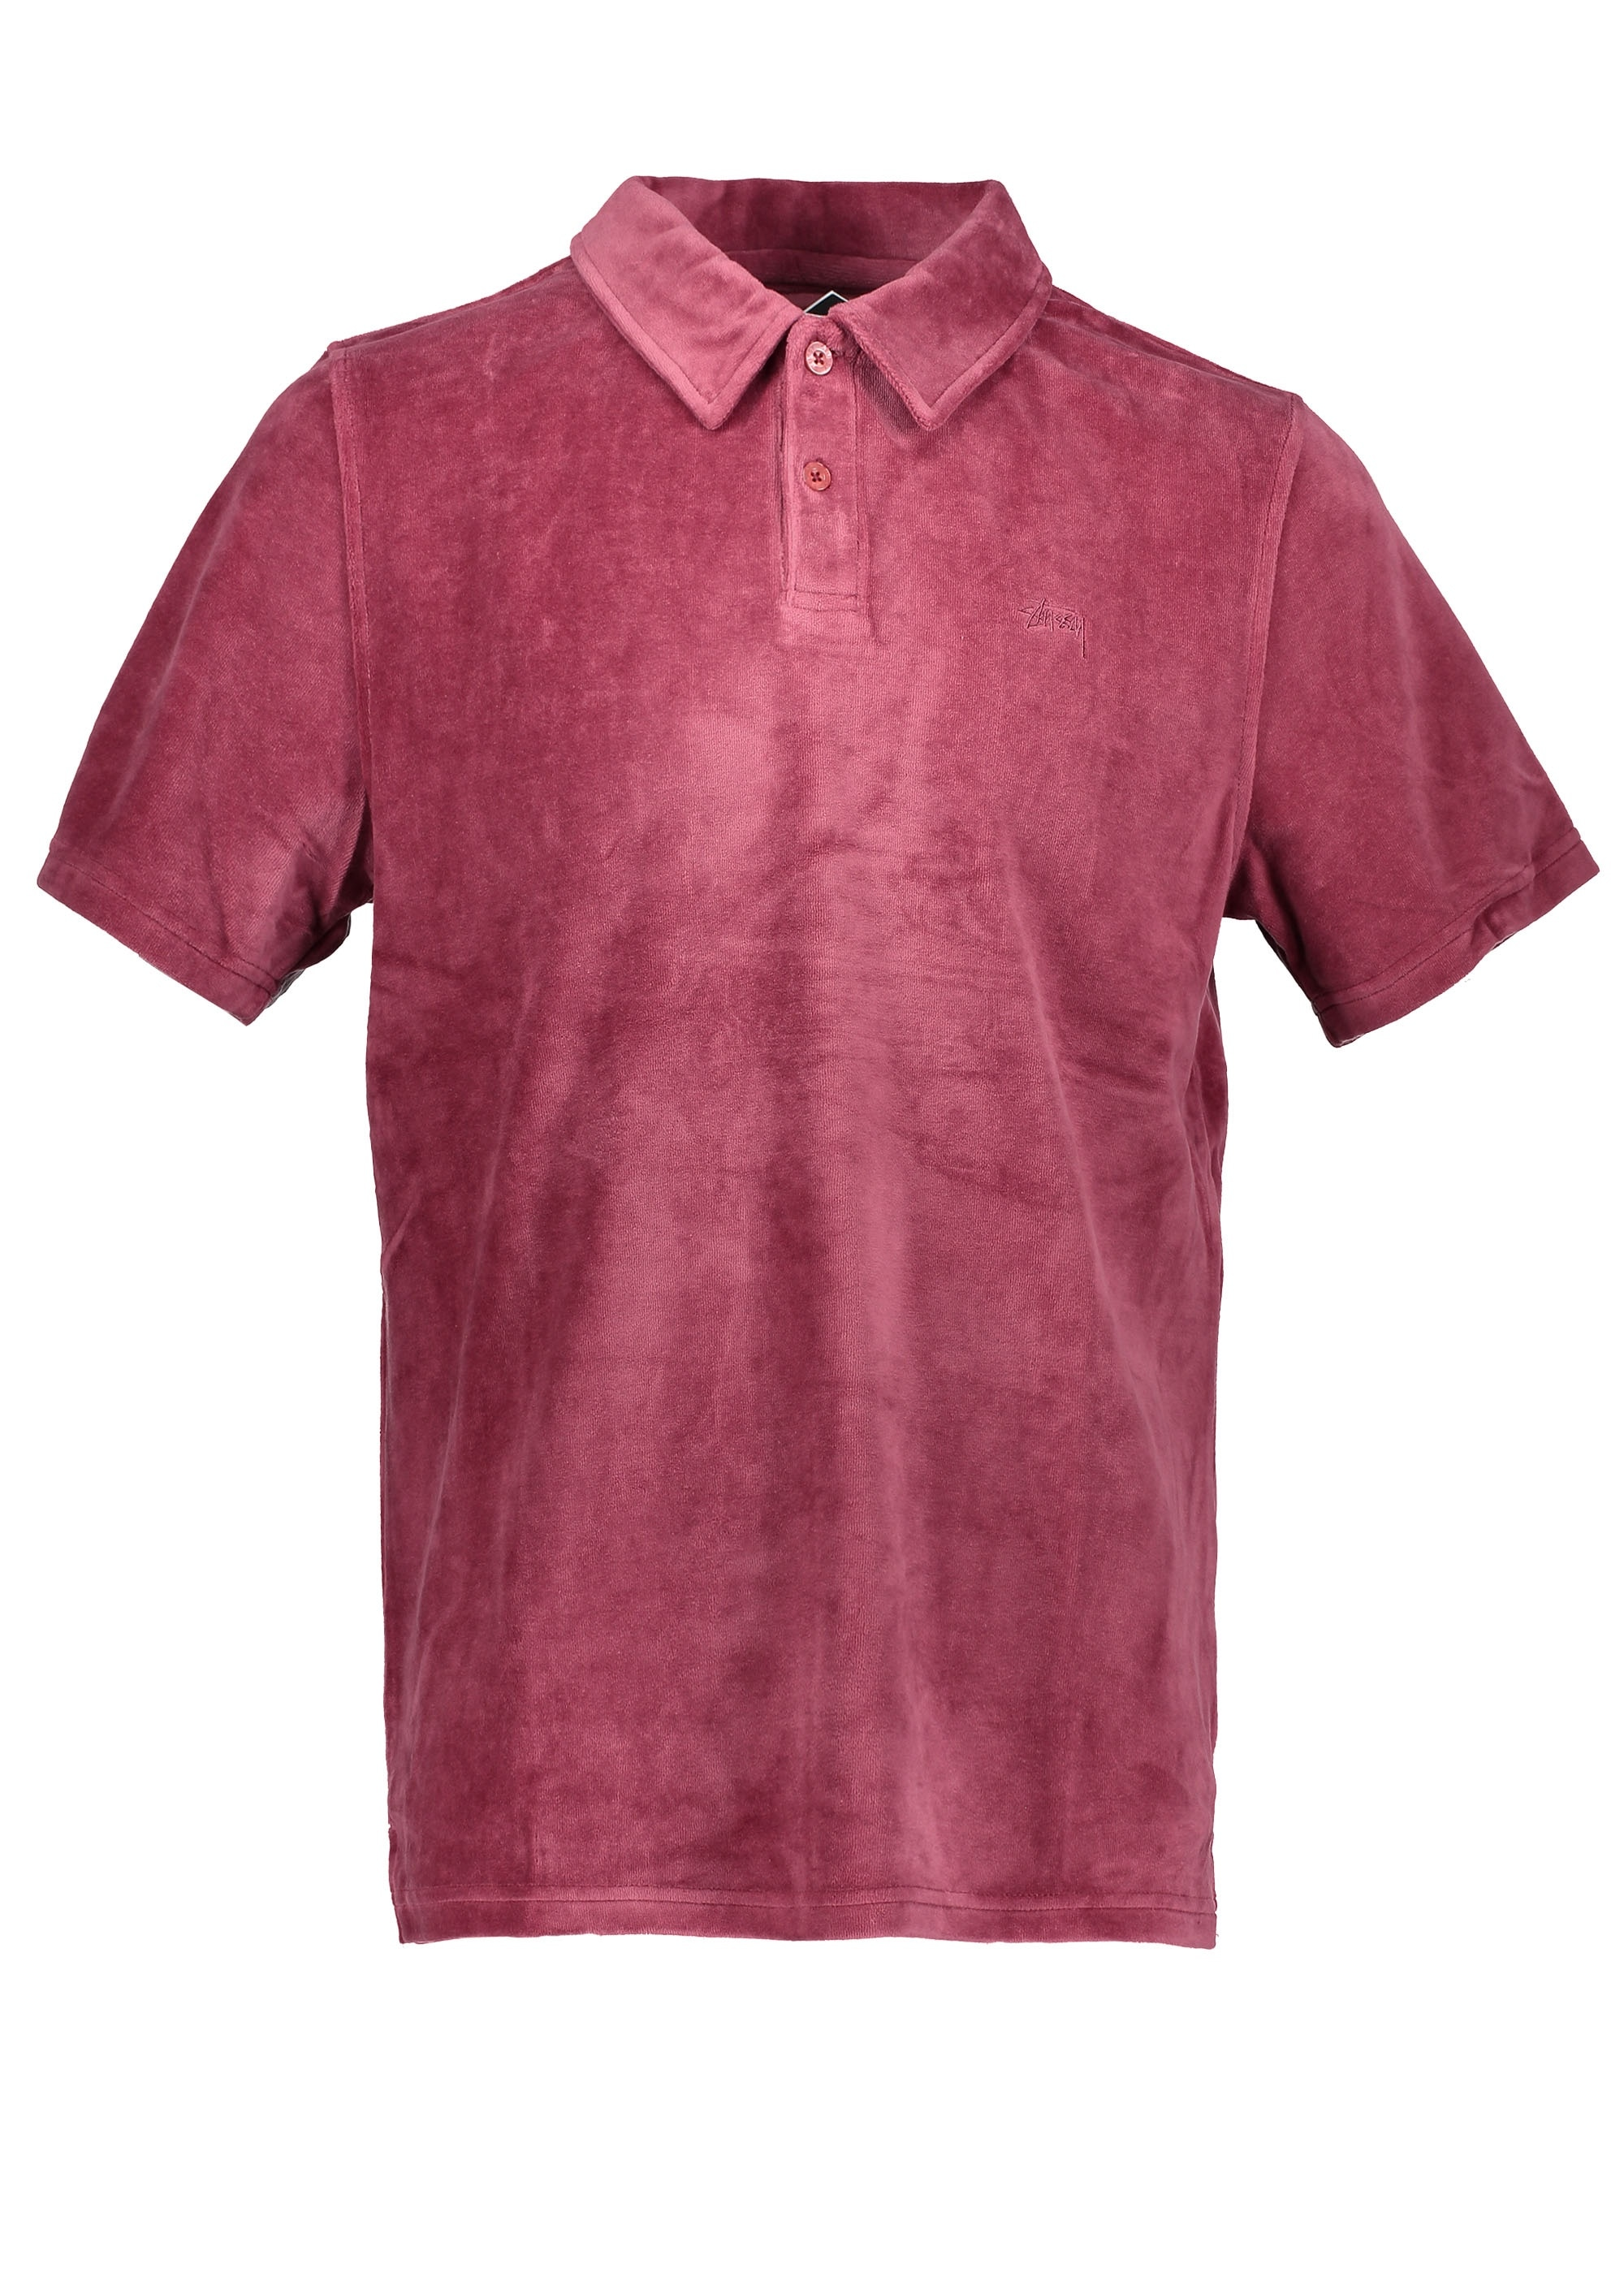 97aa7814c32 Stussy Victor S SL Polo - Maroon - Polo Shirts from Triads UK